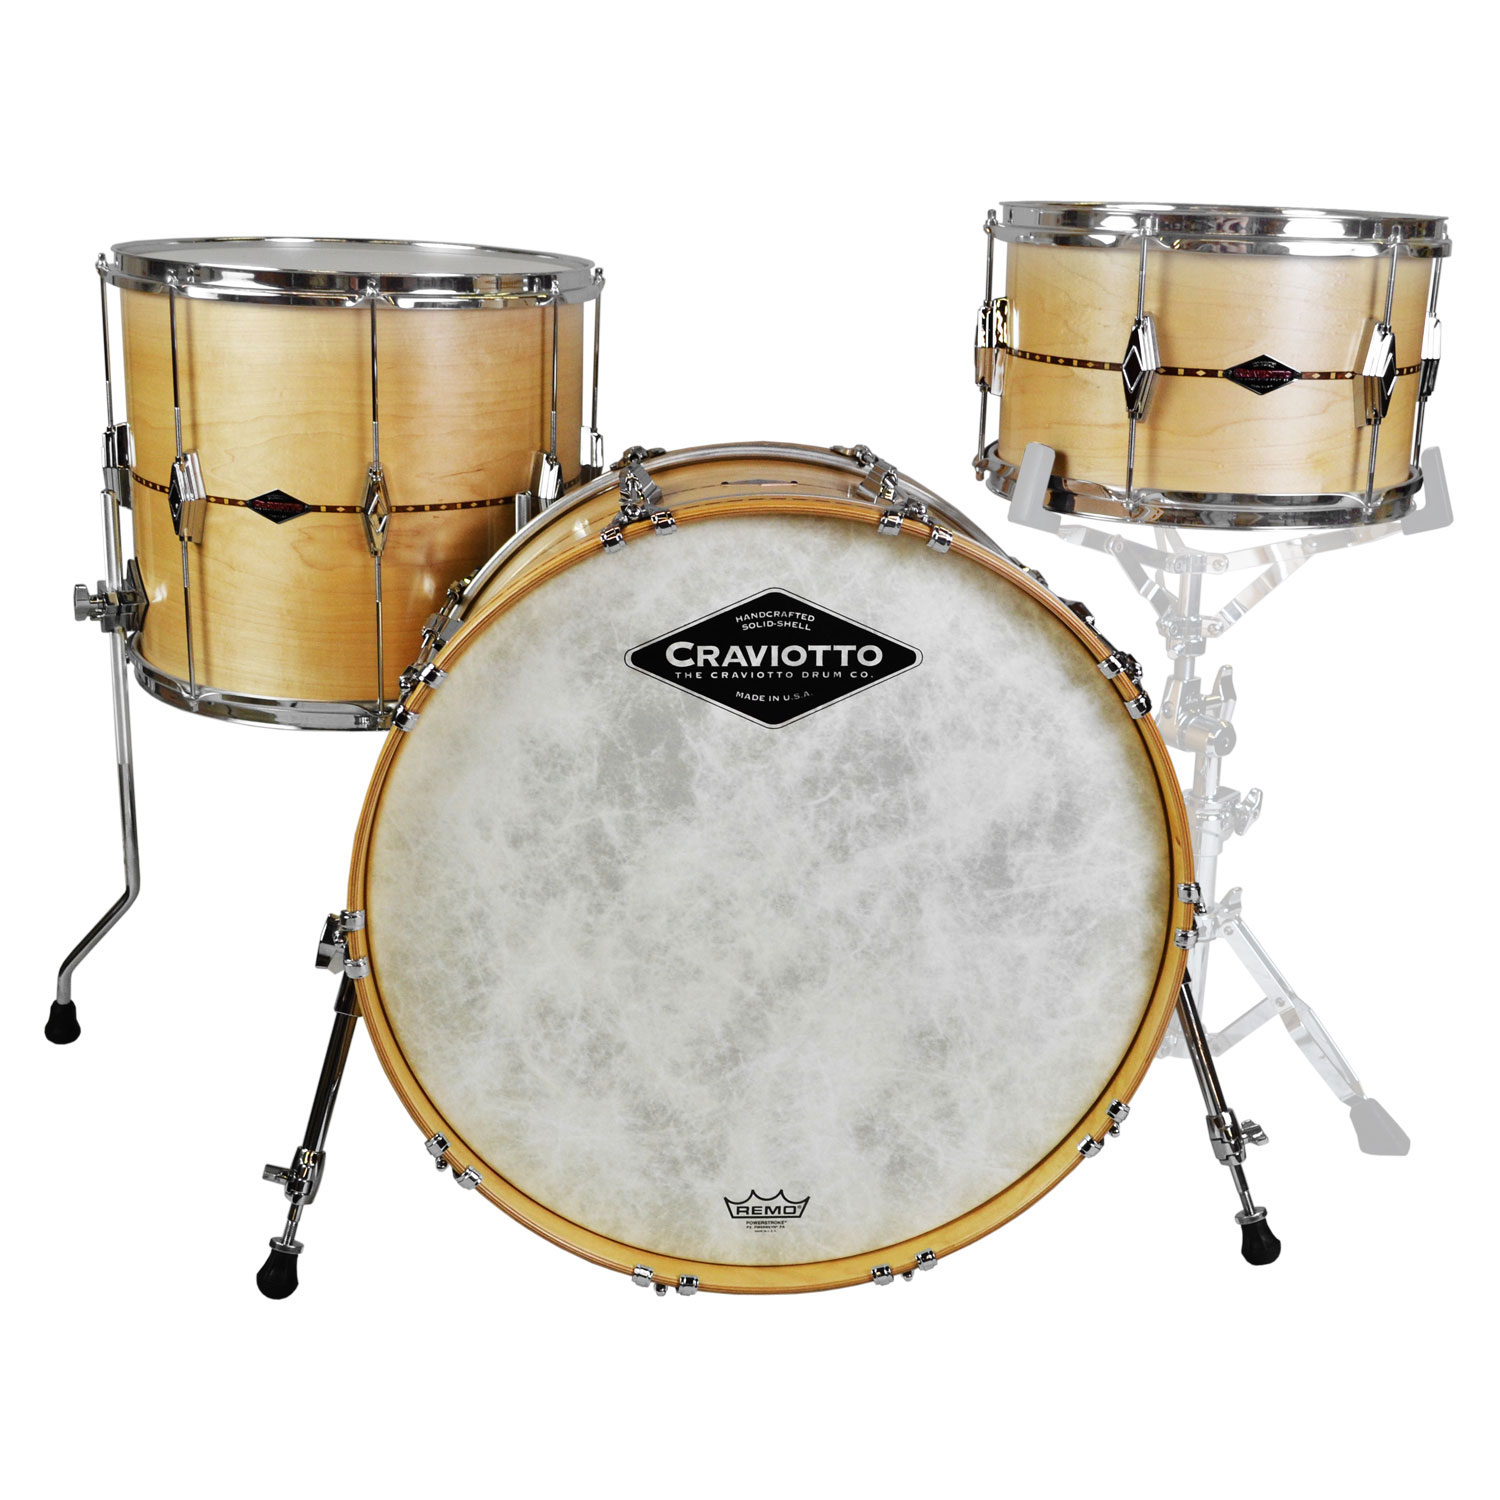 """Craviotto Center Stage Solid Maple 3-Piece Drum Set Shell Pack (22"""" Bass, 13/16"""" Toms) with Walnut Inlays"""